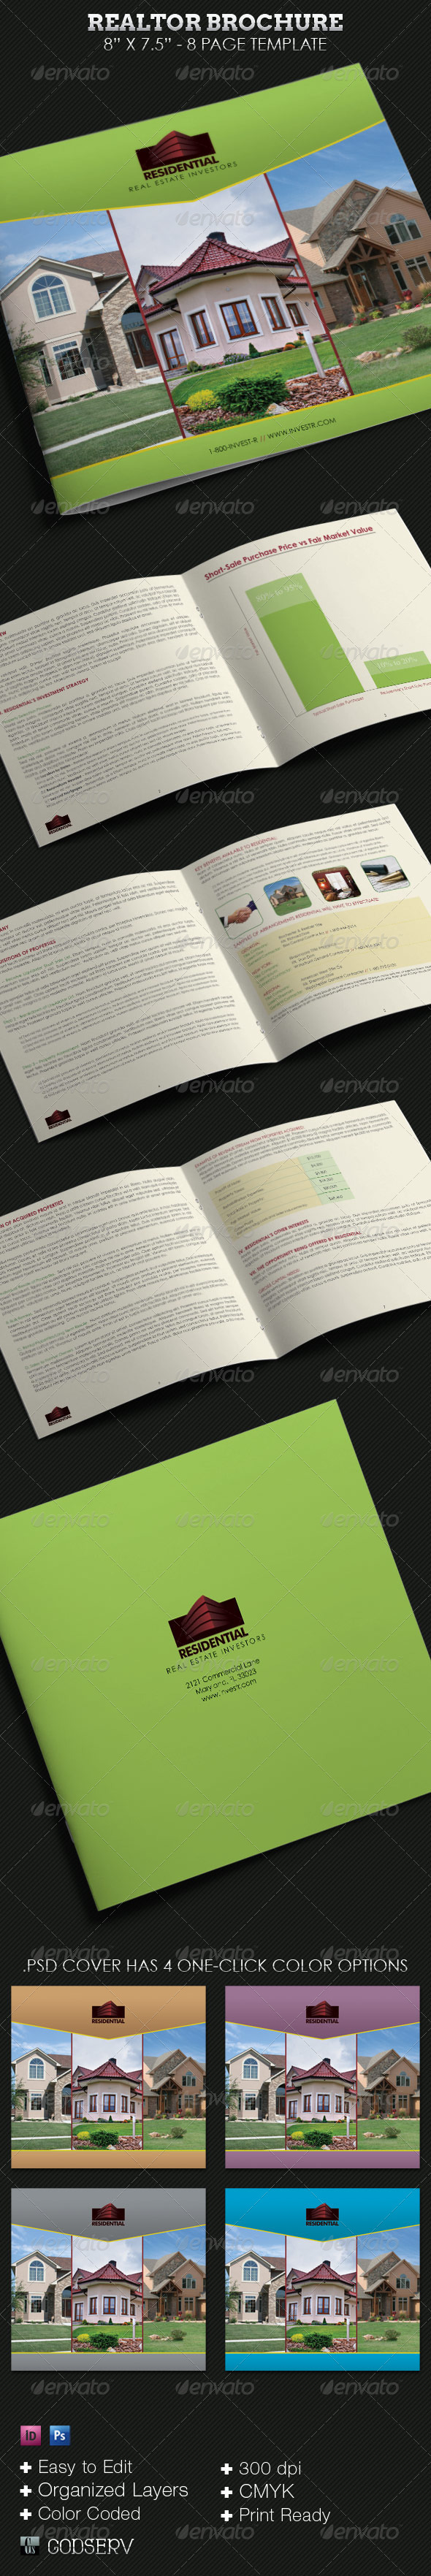 Realtor Square Brochure Template - Corporate Brochures